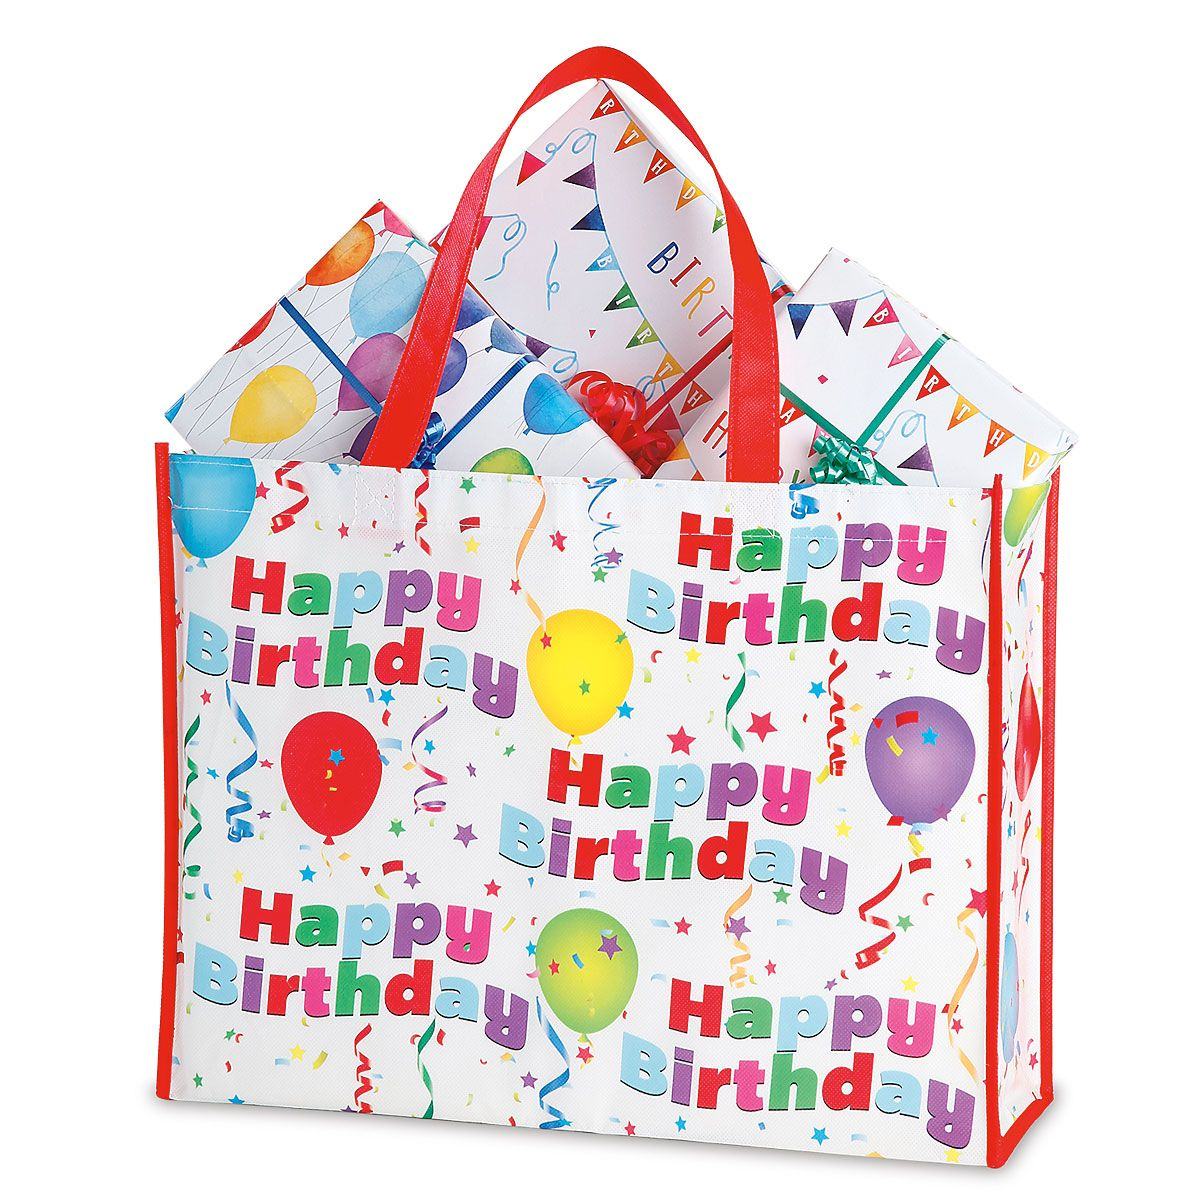 Birthday Shopping Tote - BOGO Get 2 for the price of 1! Durable, non-woven birthday fabric tote is 13 H x 16 W x 5 D. Great for holiday shopping, they also make handy, reusable gift bags for large or oddly shaped gifts. Contents not included.